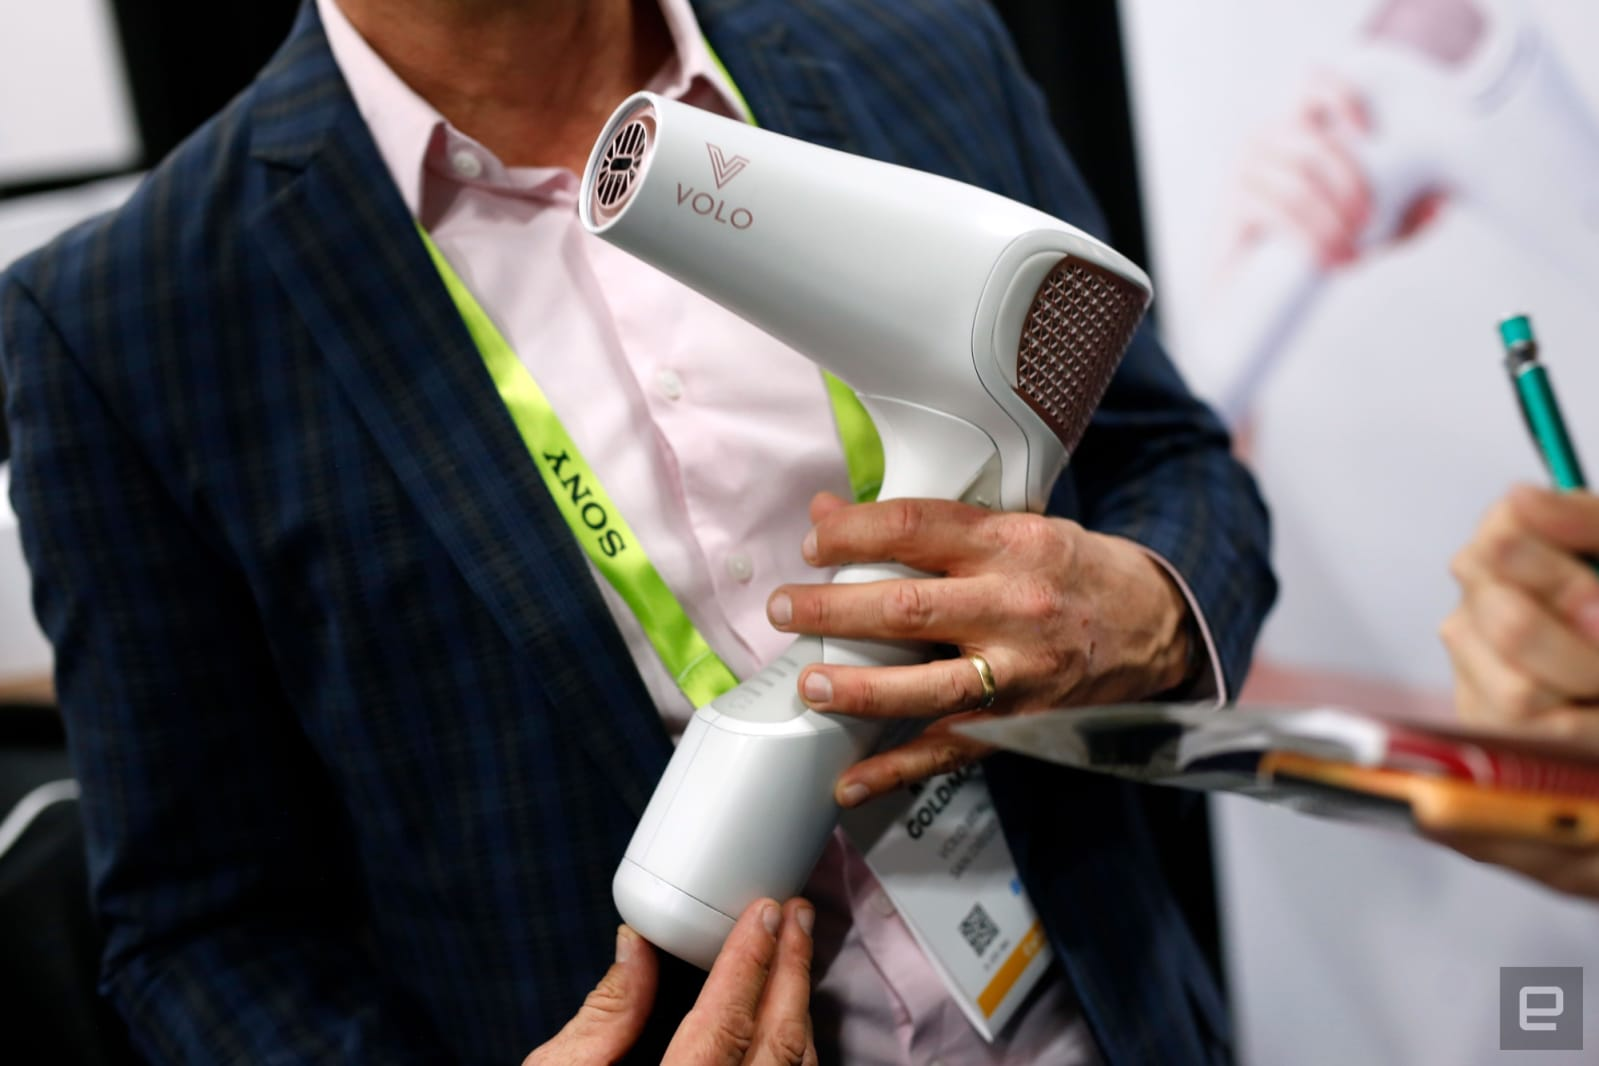 Volo Go infrared hairdryer at CES 2019